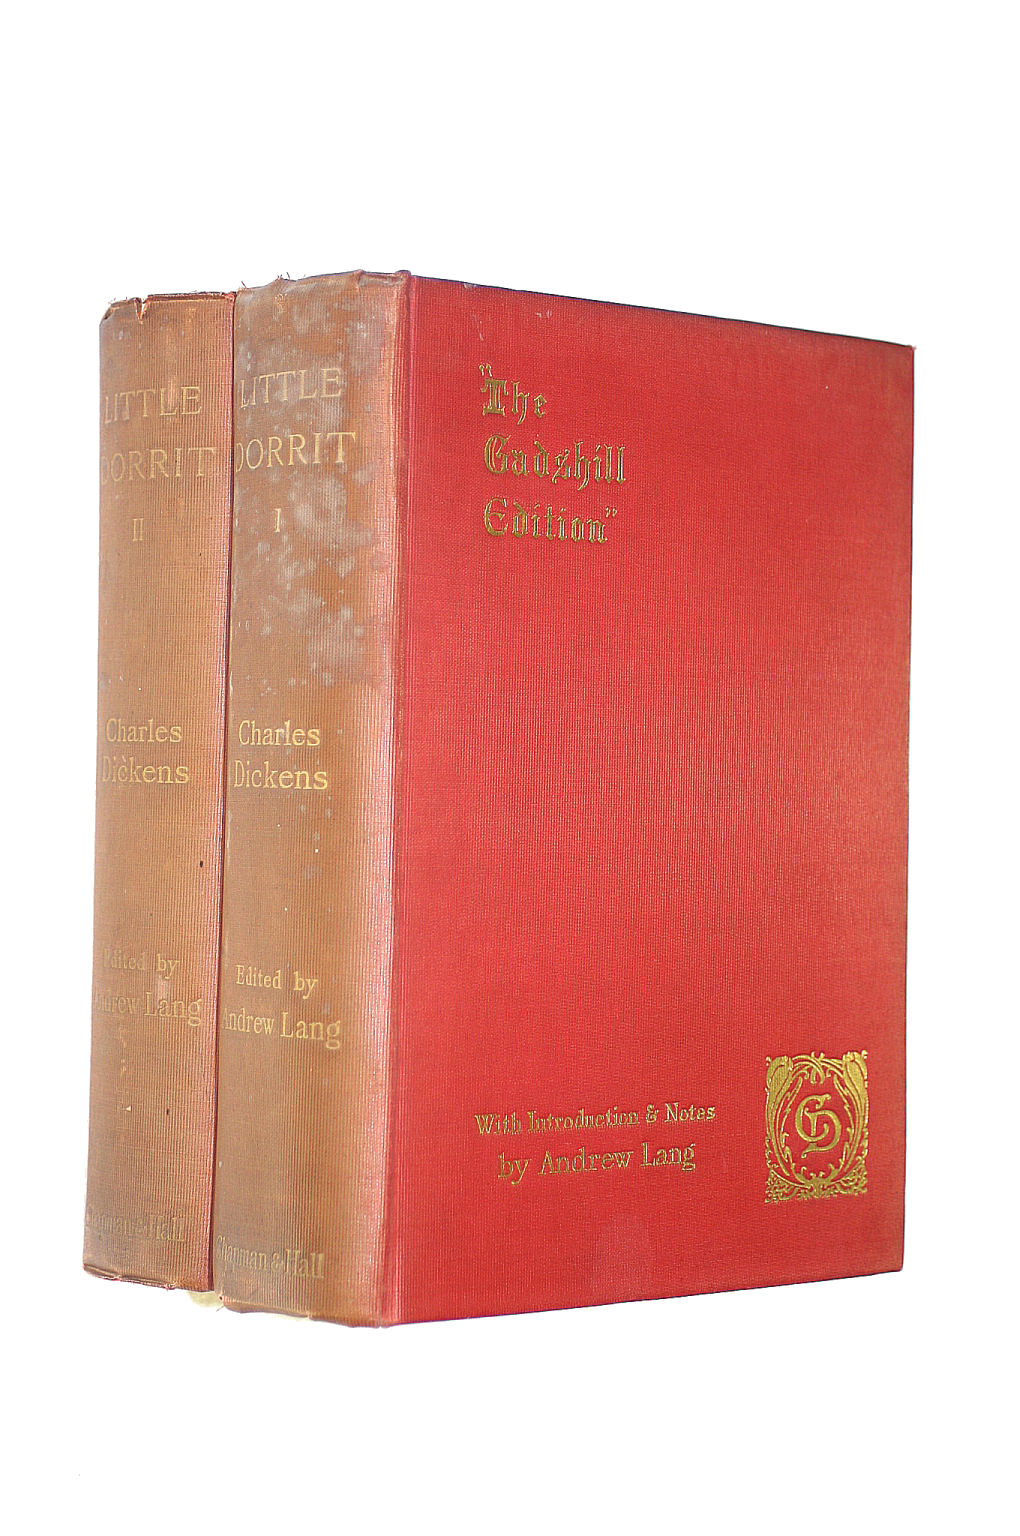 Image for Little Dorrit. The Gadshill Edition, in 2 Volumes